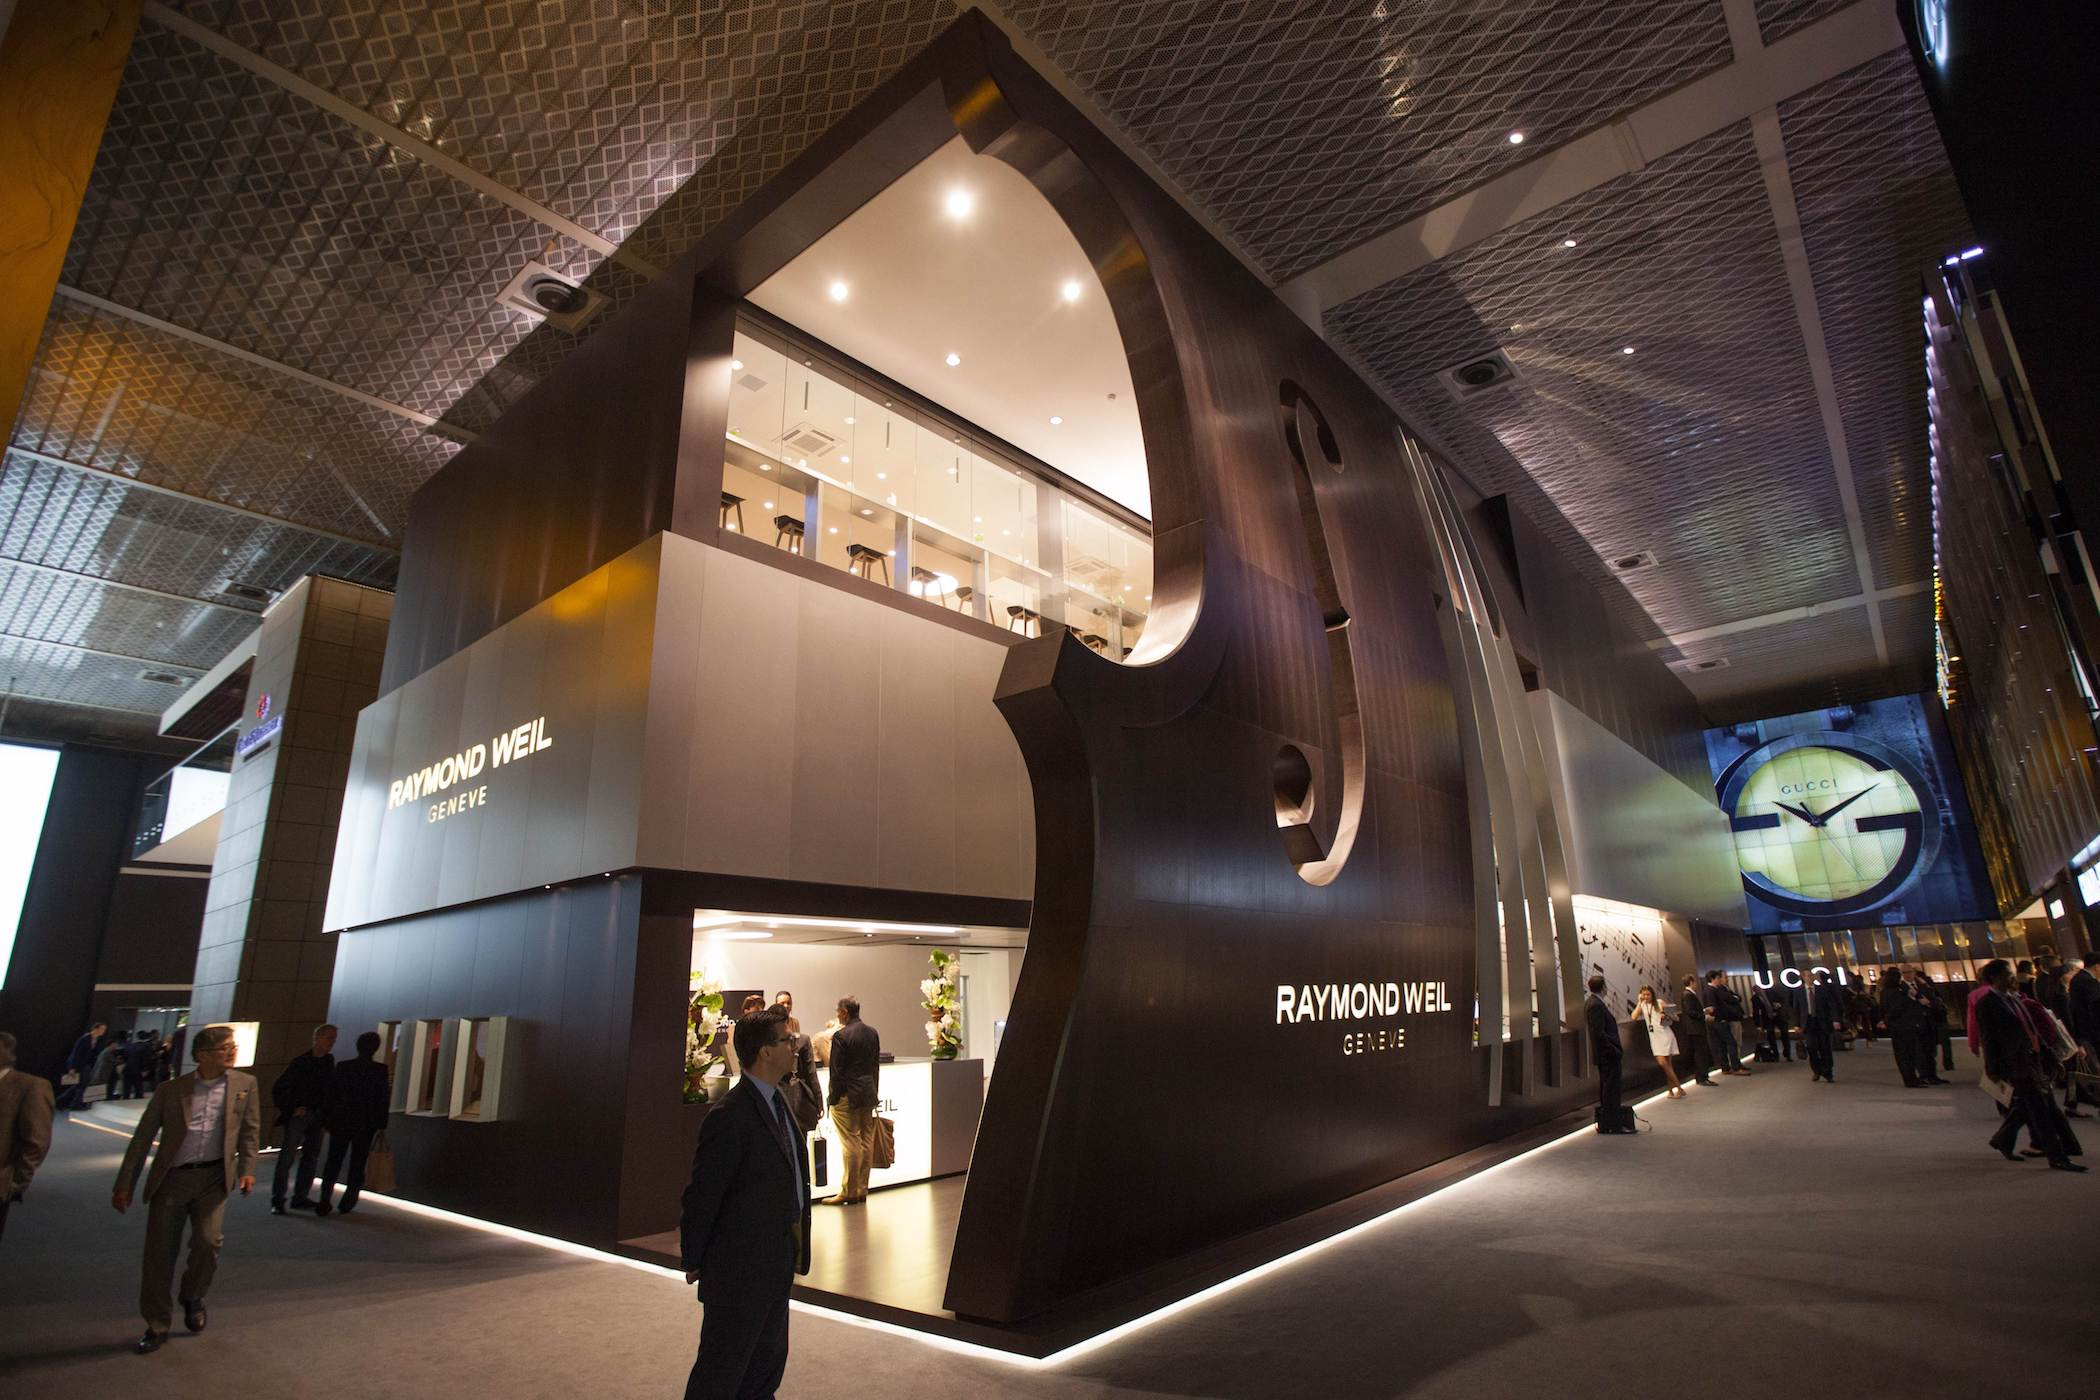 Raymond Weil leaves Baselworld 2019